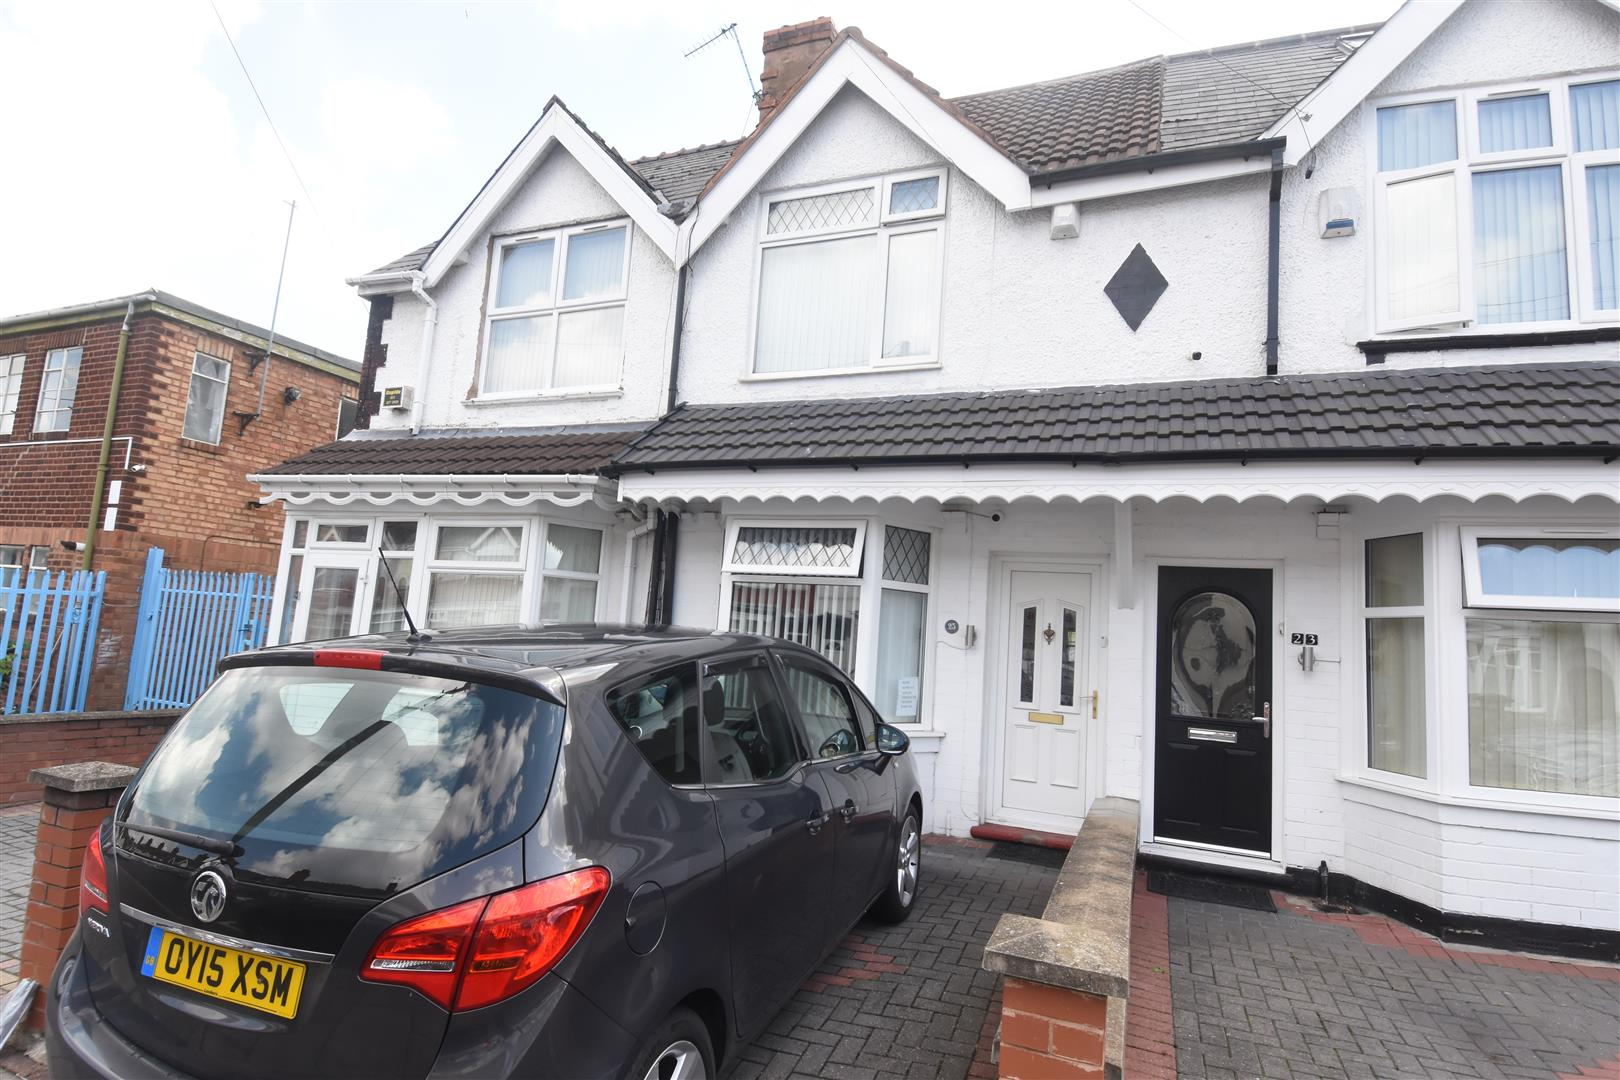 3 bed  for sale in Rogers Road, Ward End, Birmingham 1